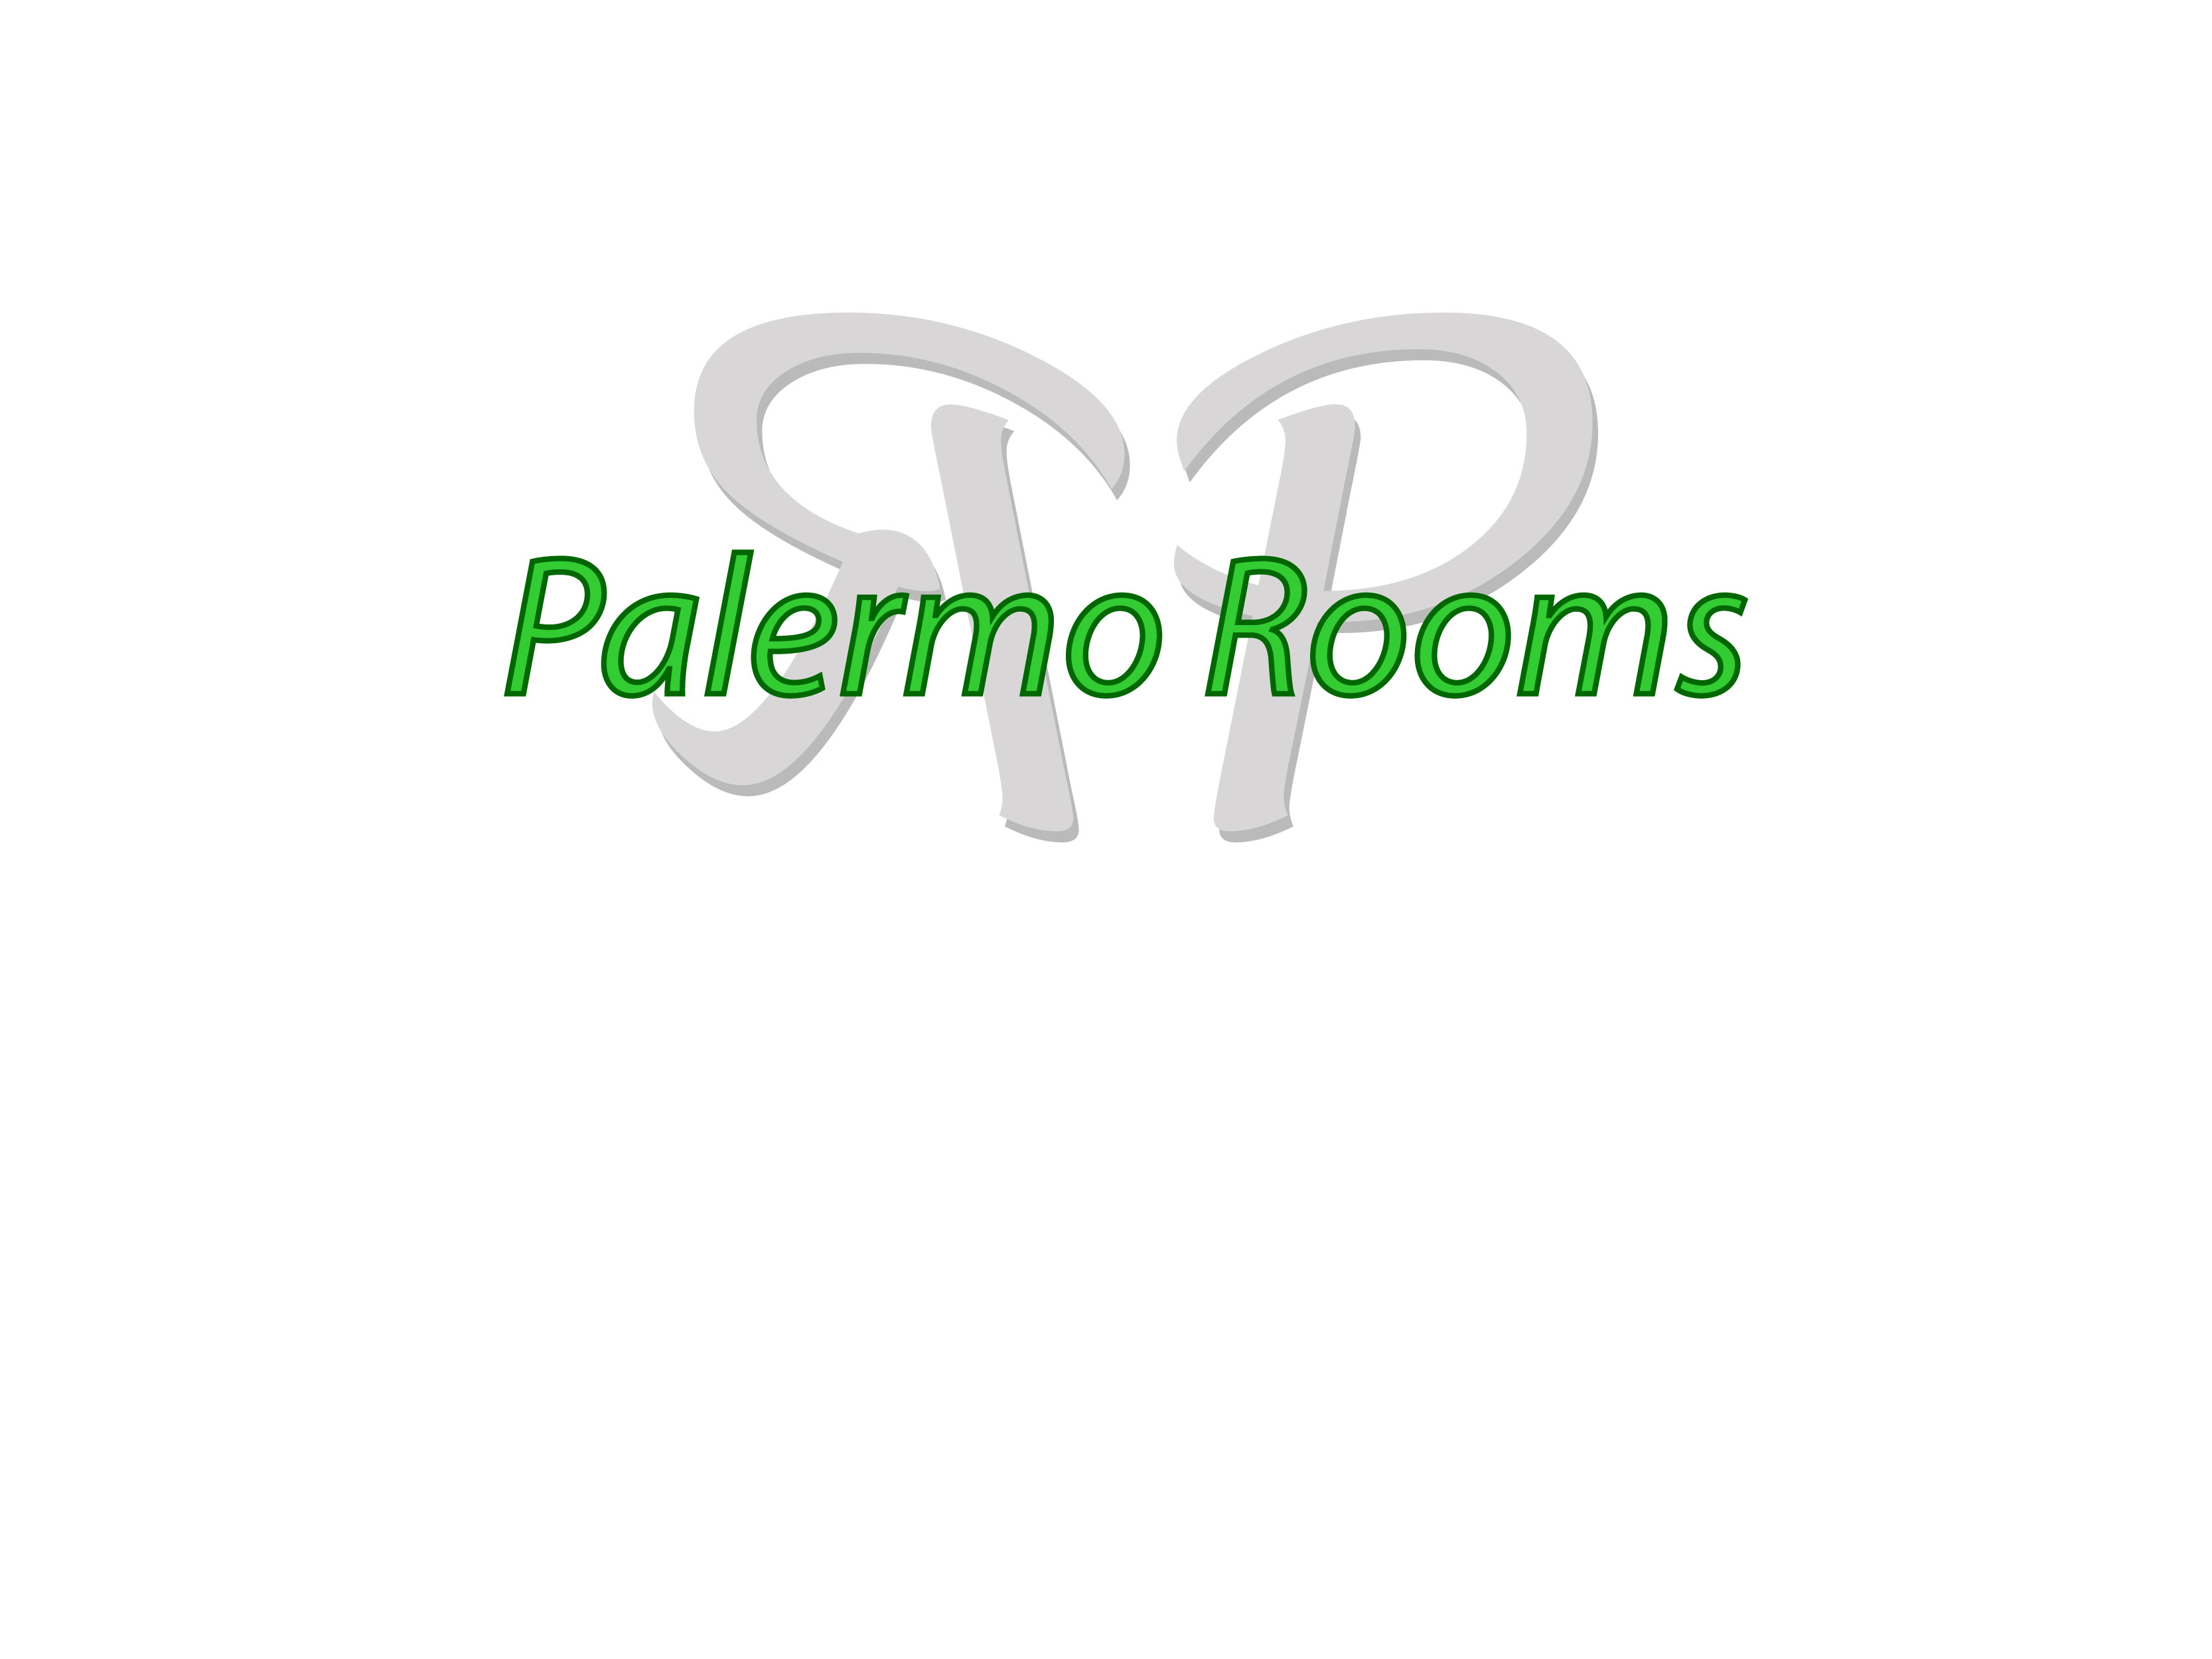 Palermo Rooms